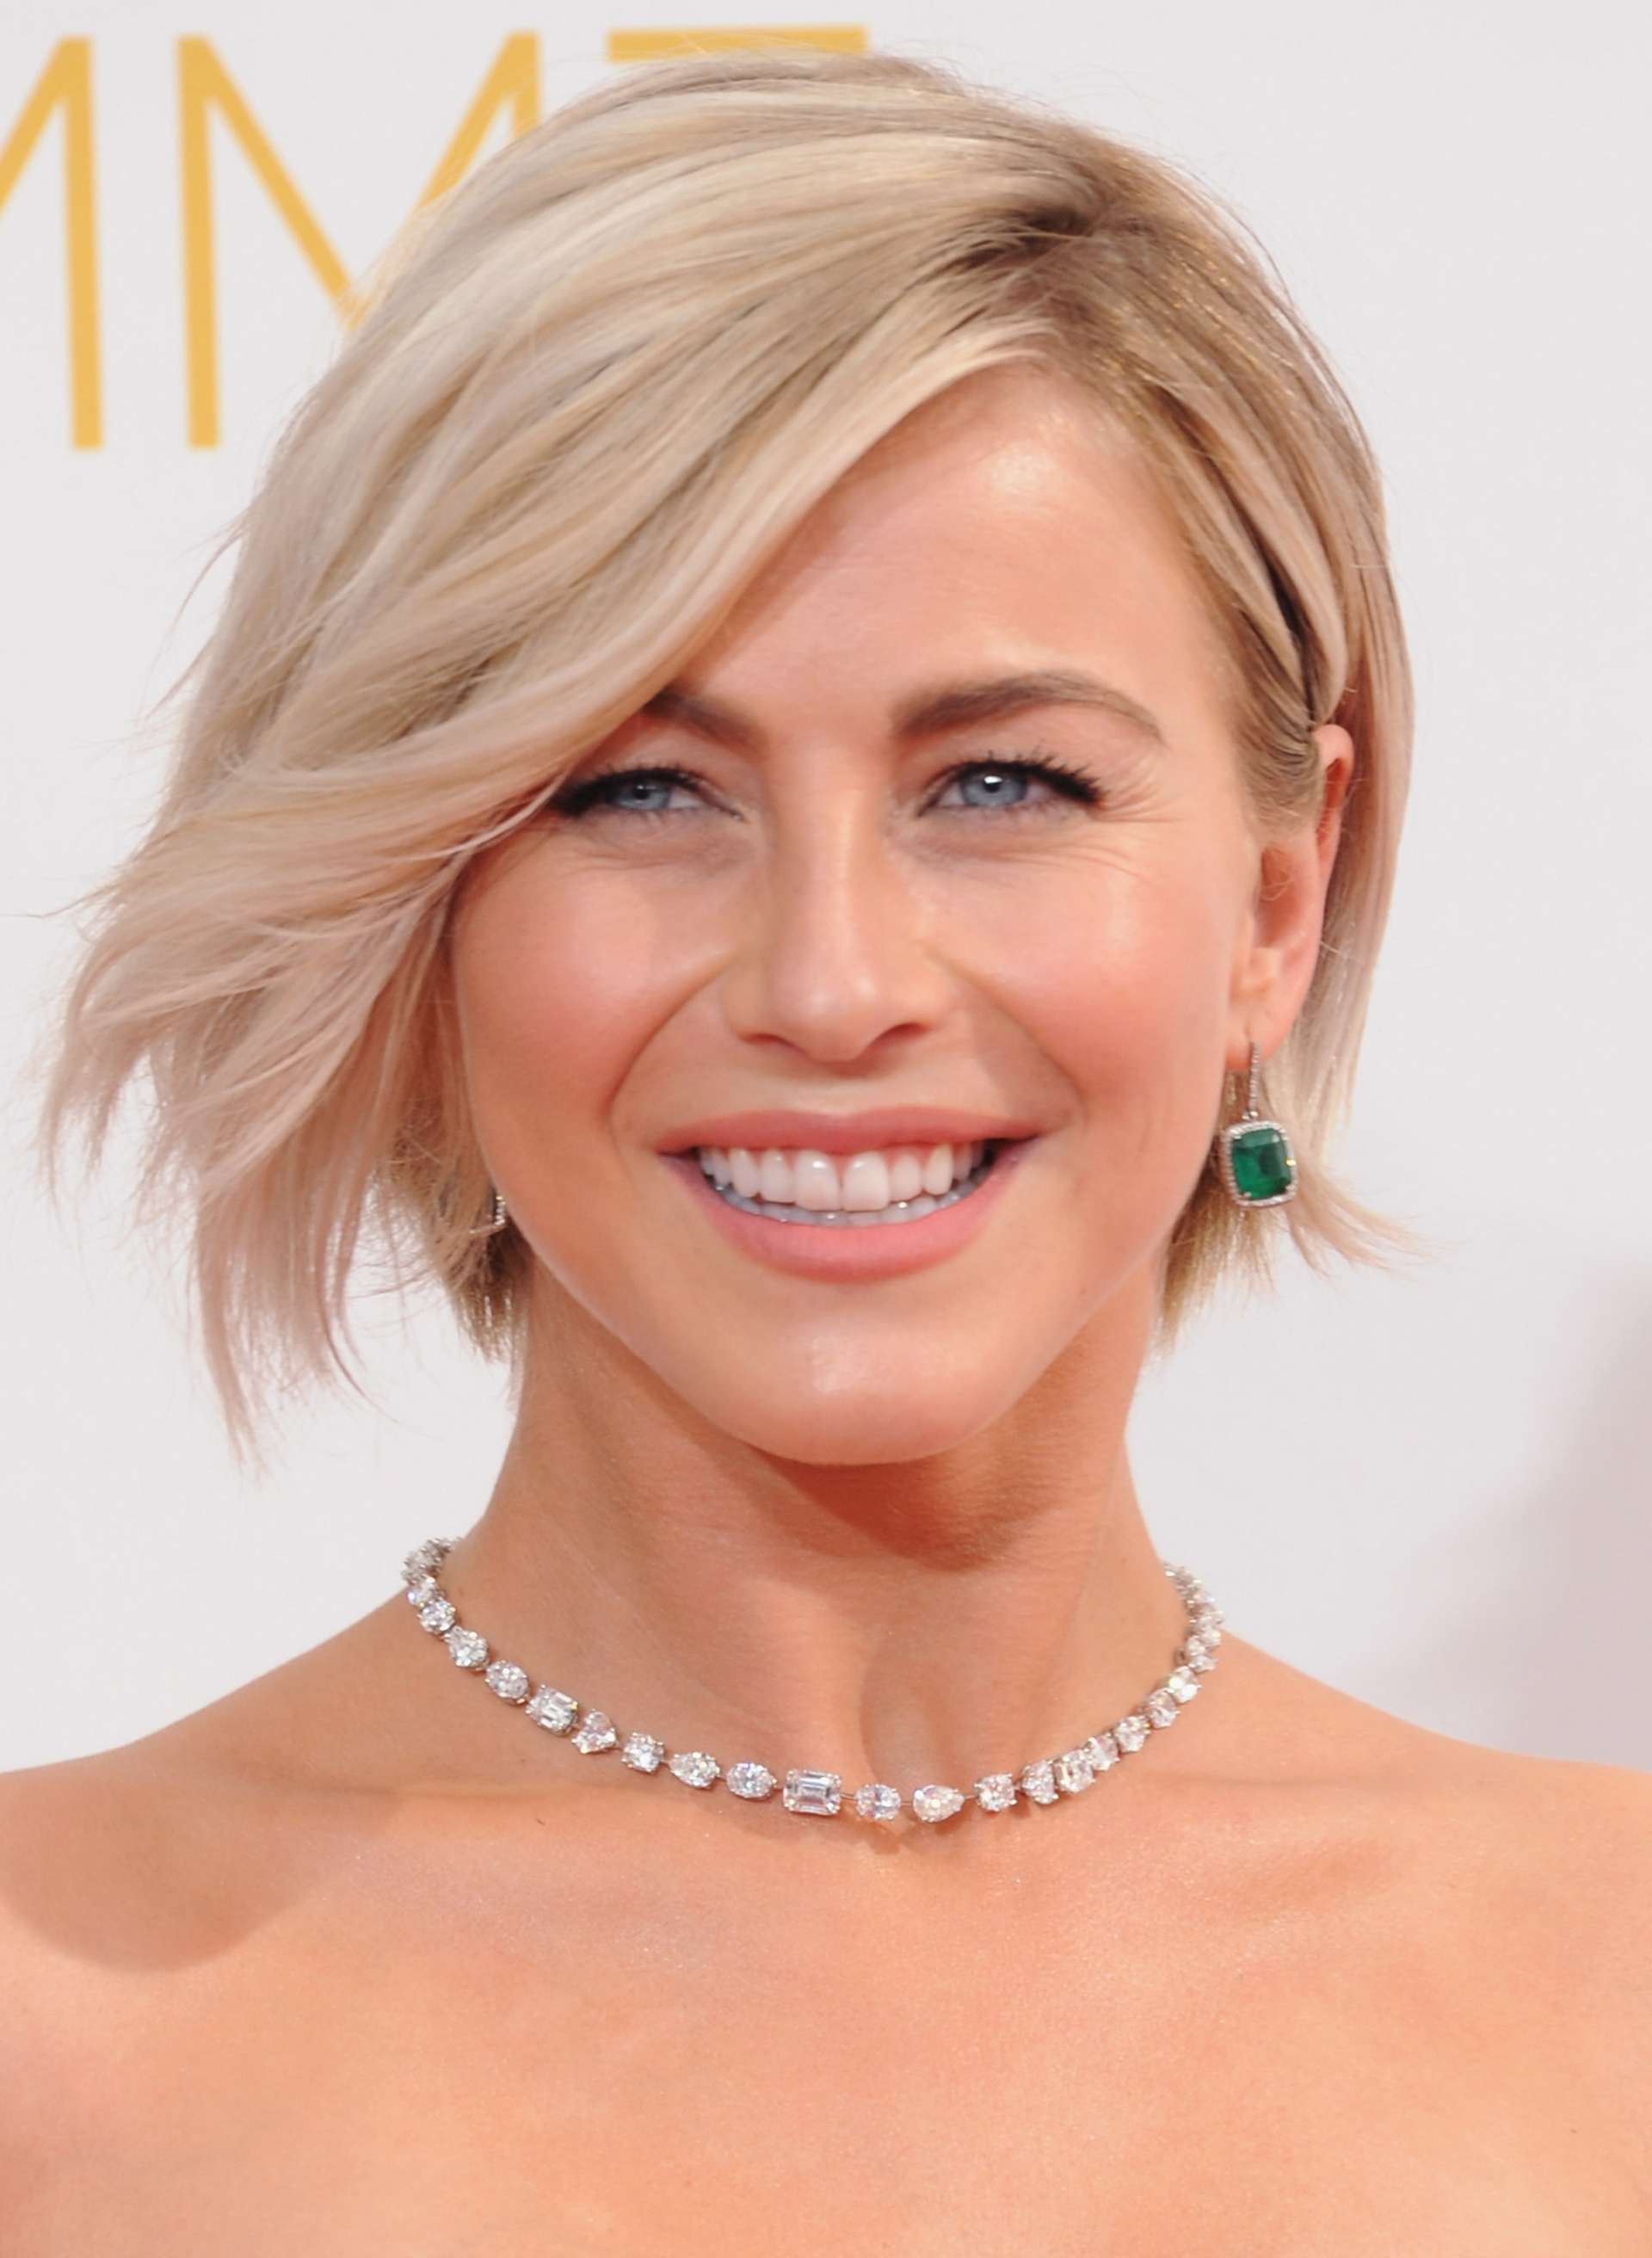 Showing Gallery of Julianne Hough Pixie Hairstyles View 13 of 16